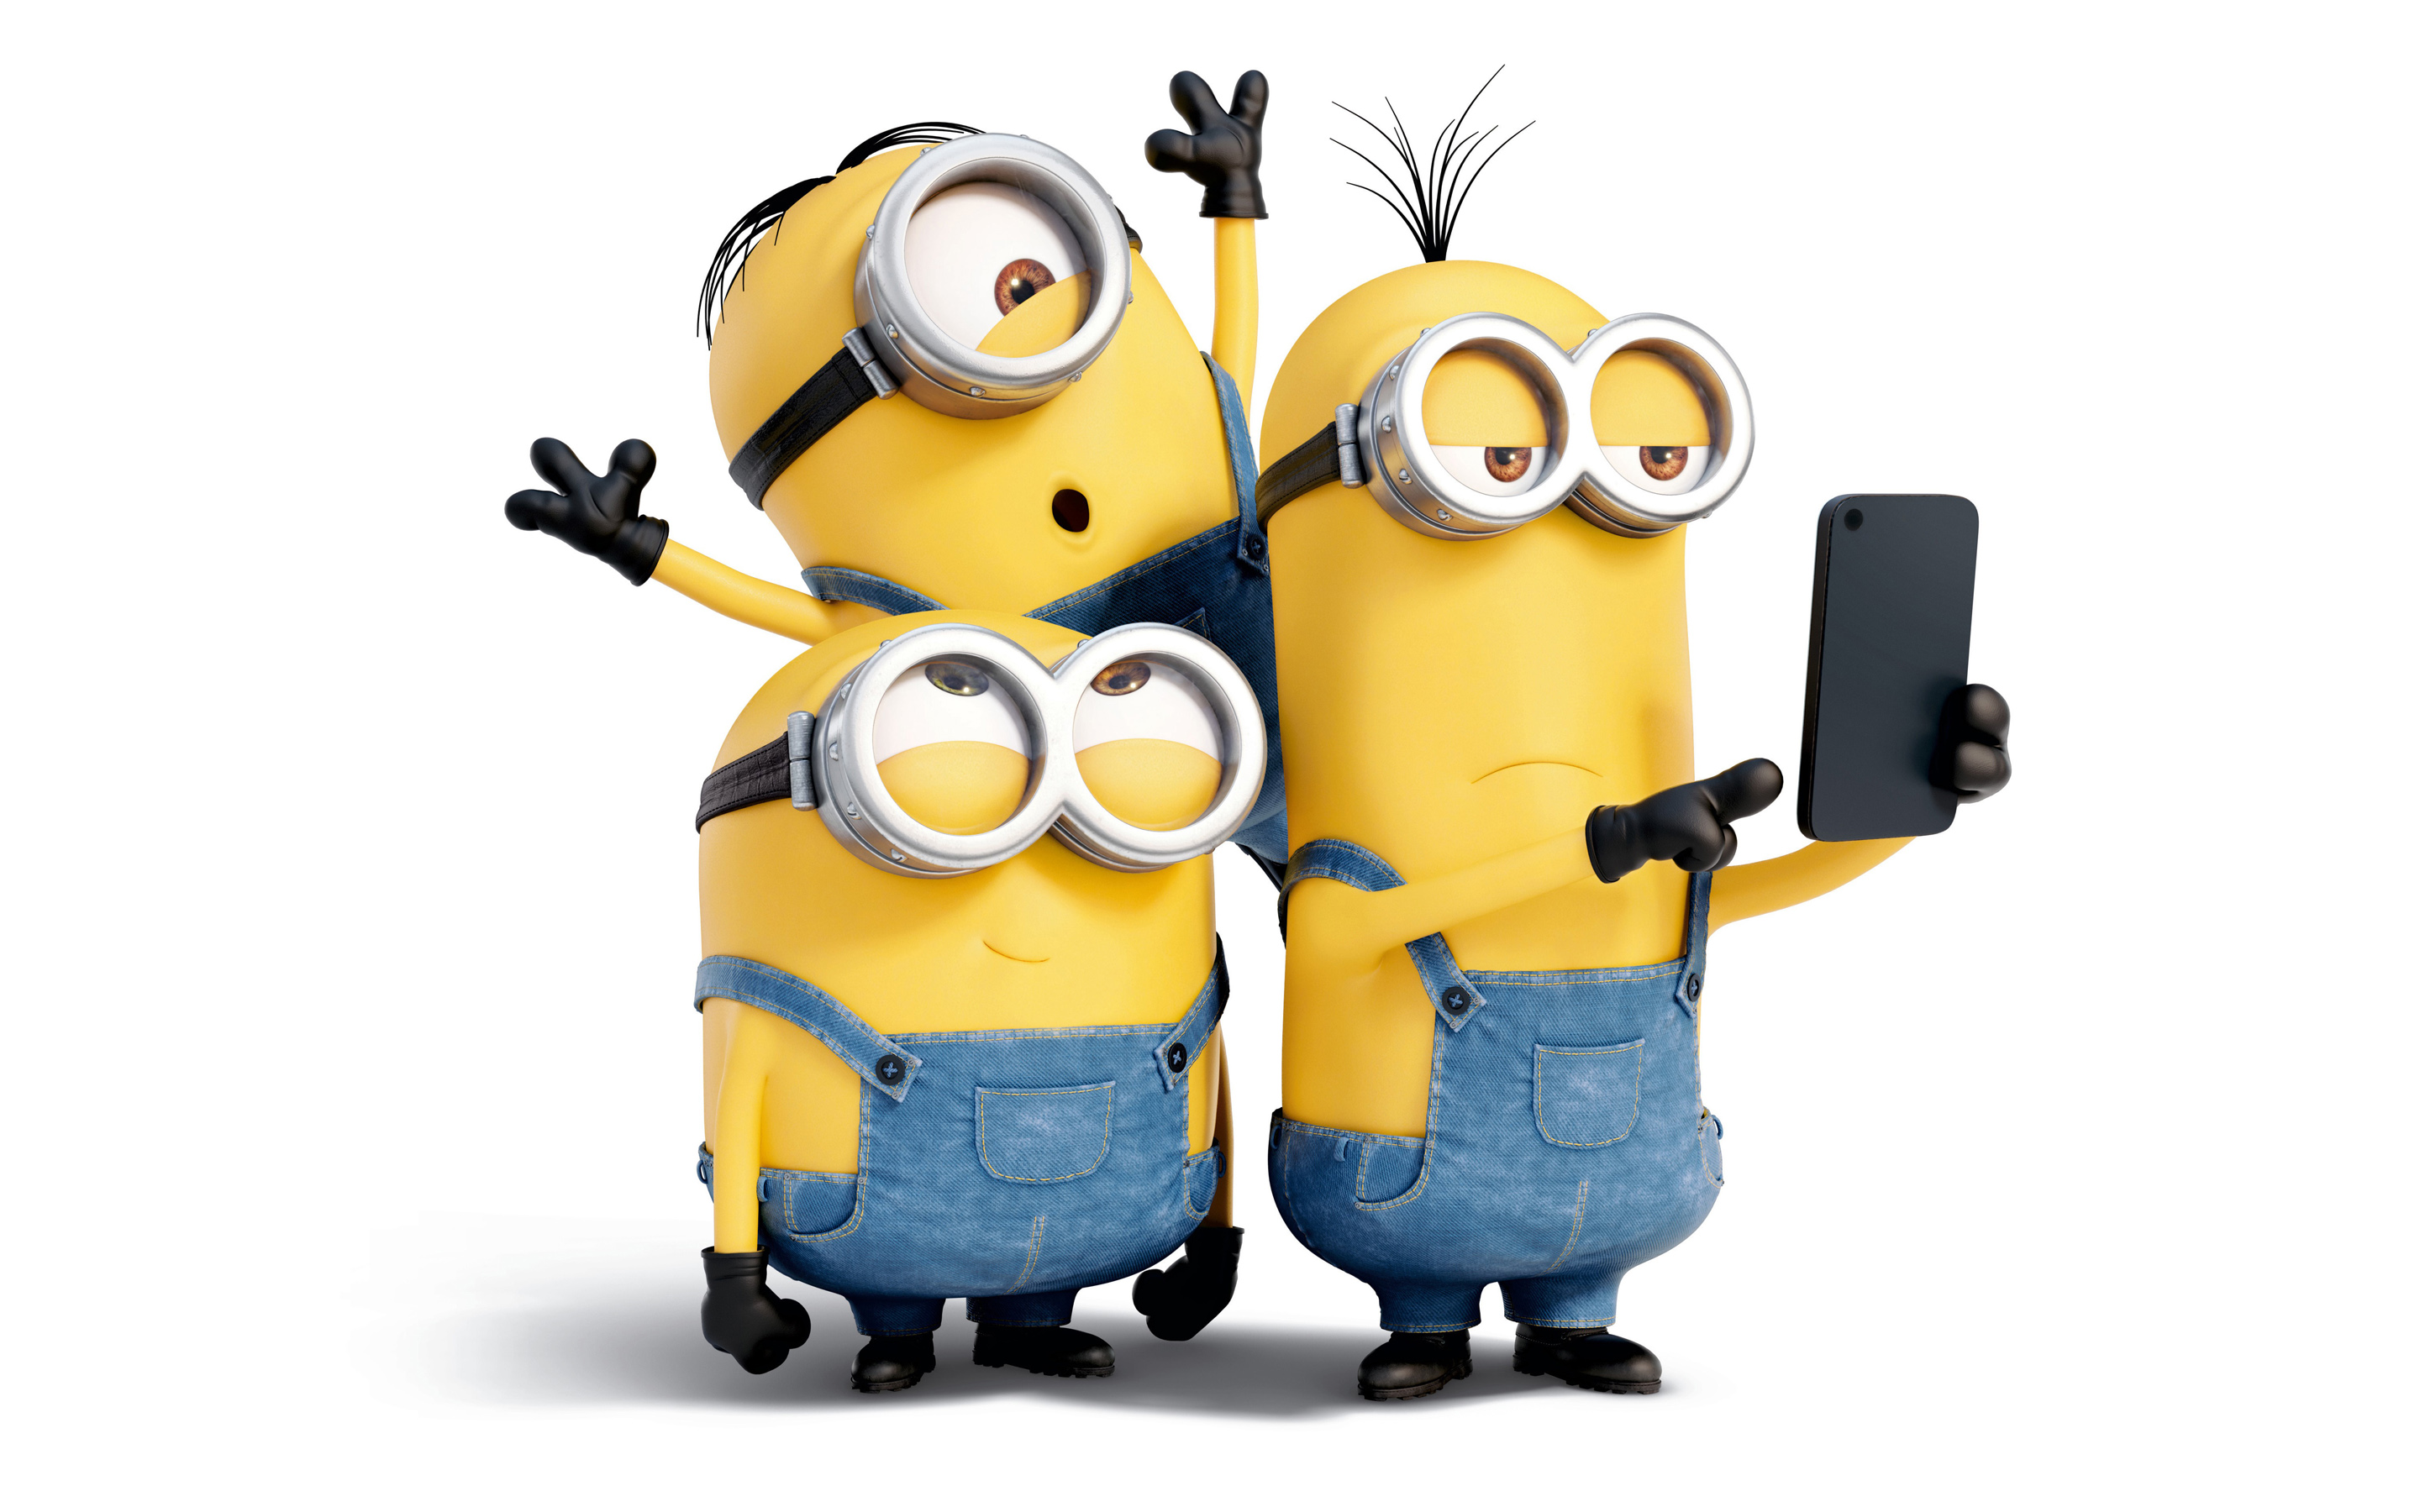 2880x1800px minion wallpaper for ipad - wallpapersafari